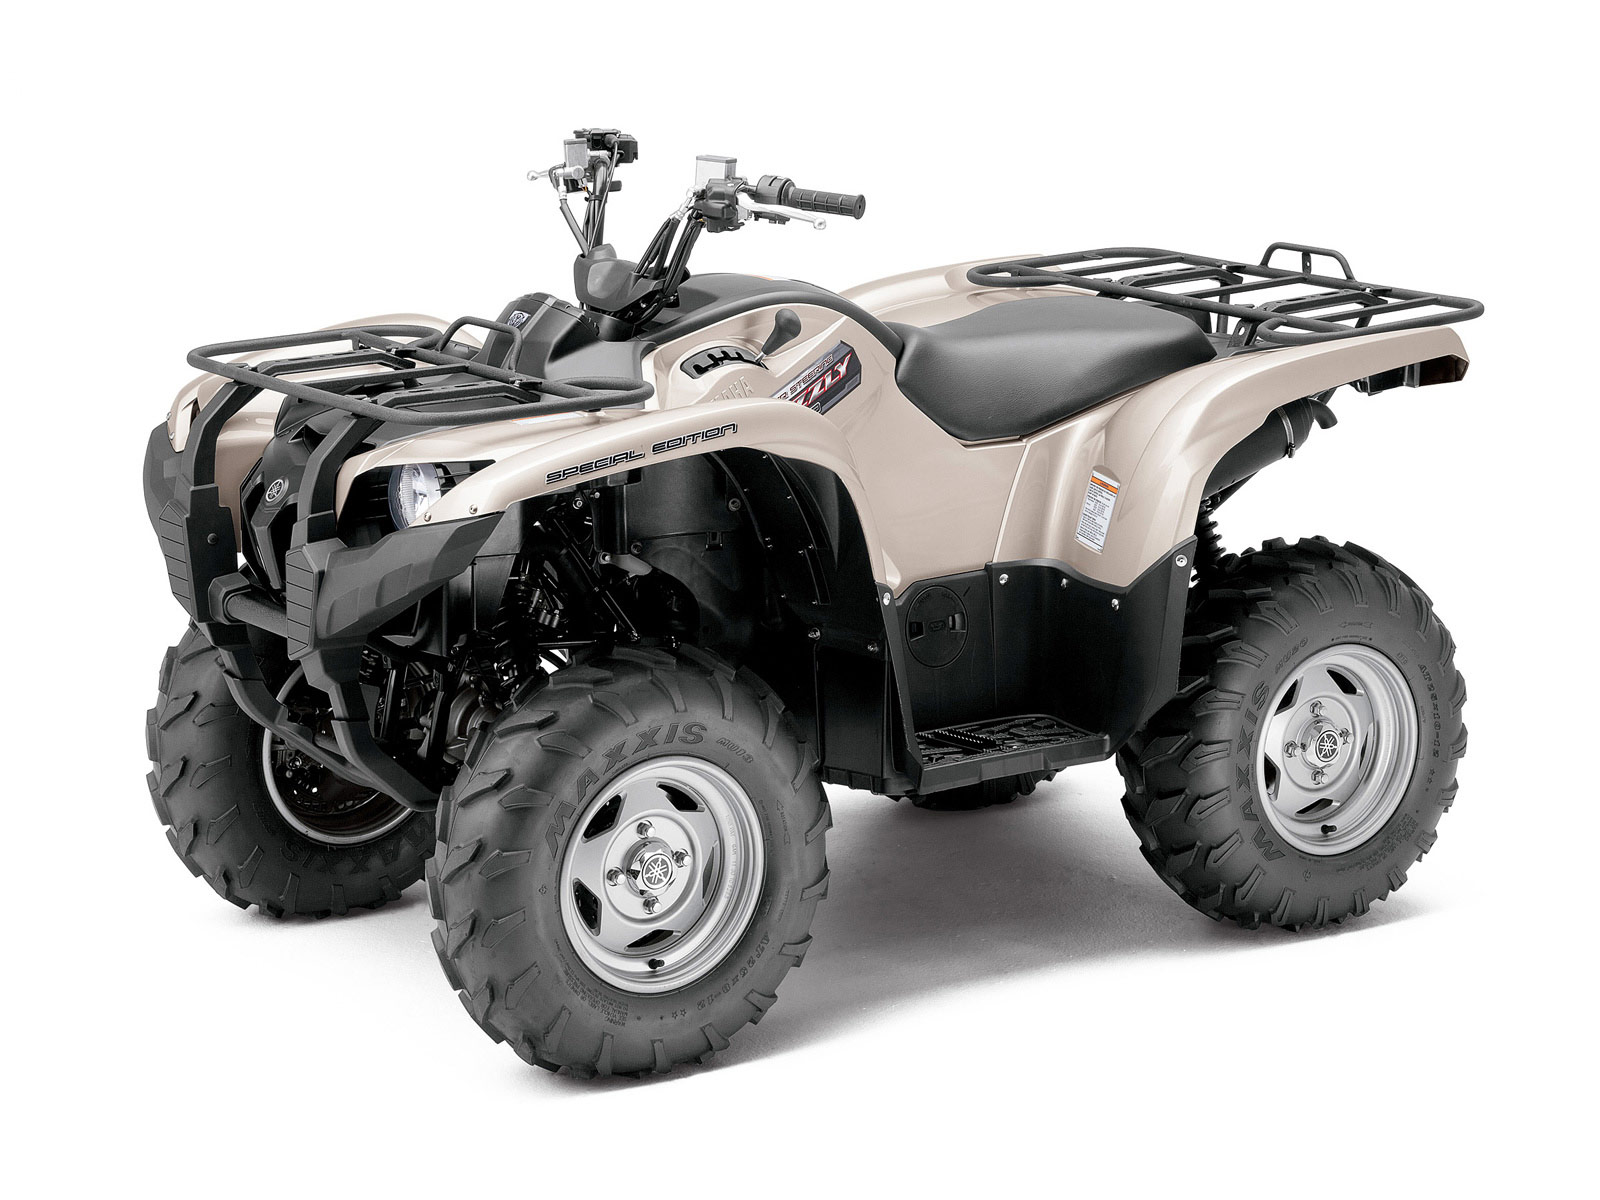 2012 yamaha grizzly 700 fi auto 4x4 eps special edition for Yamaha grizzly atv